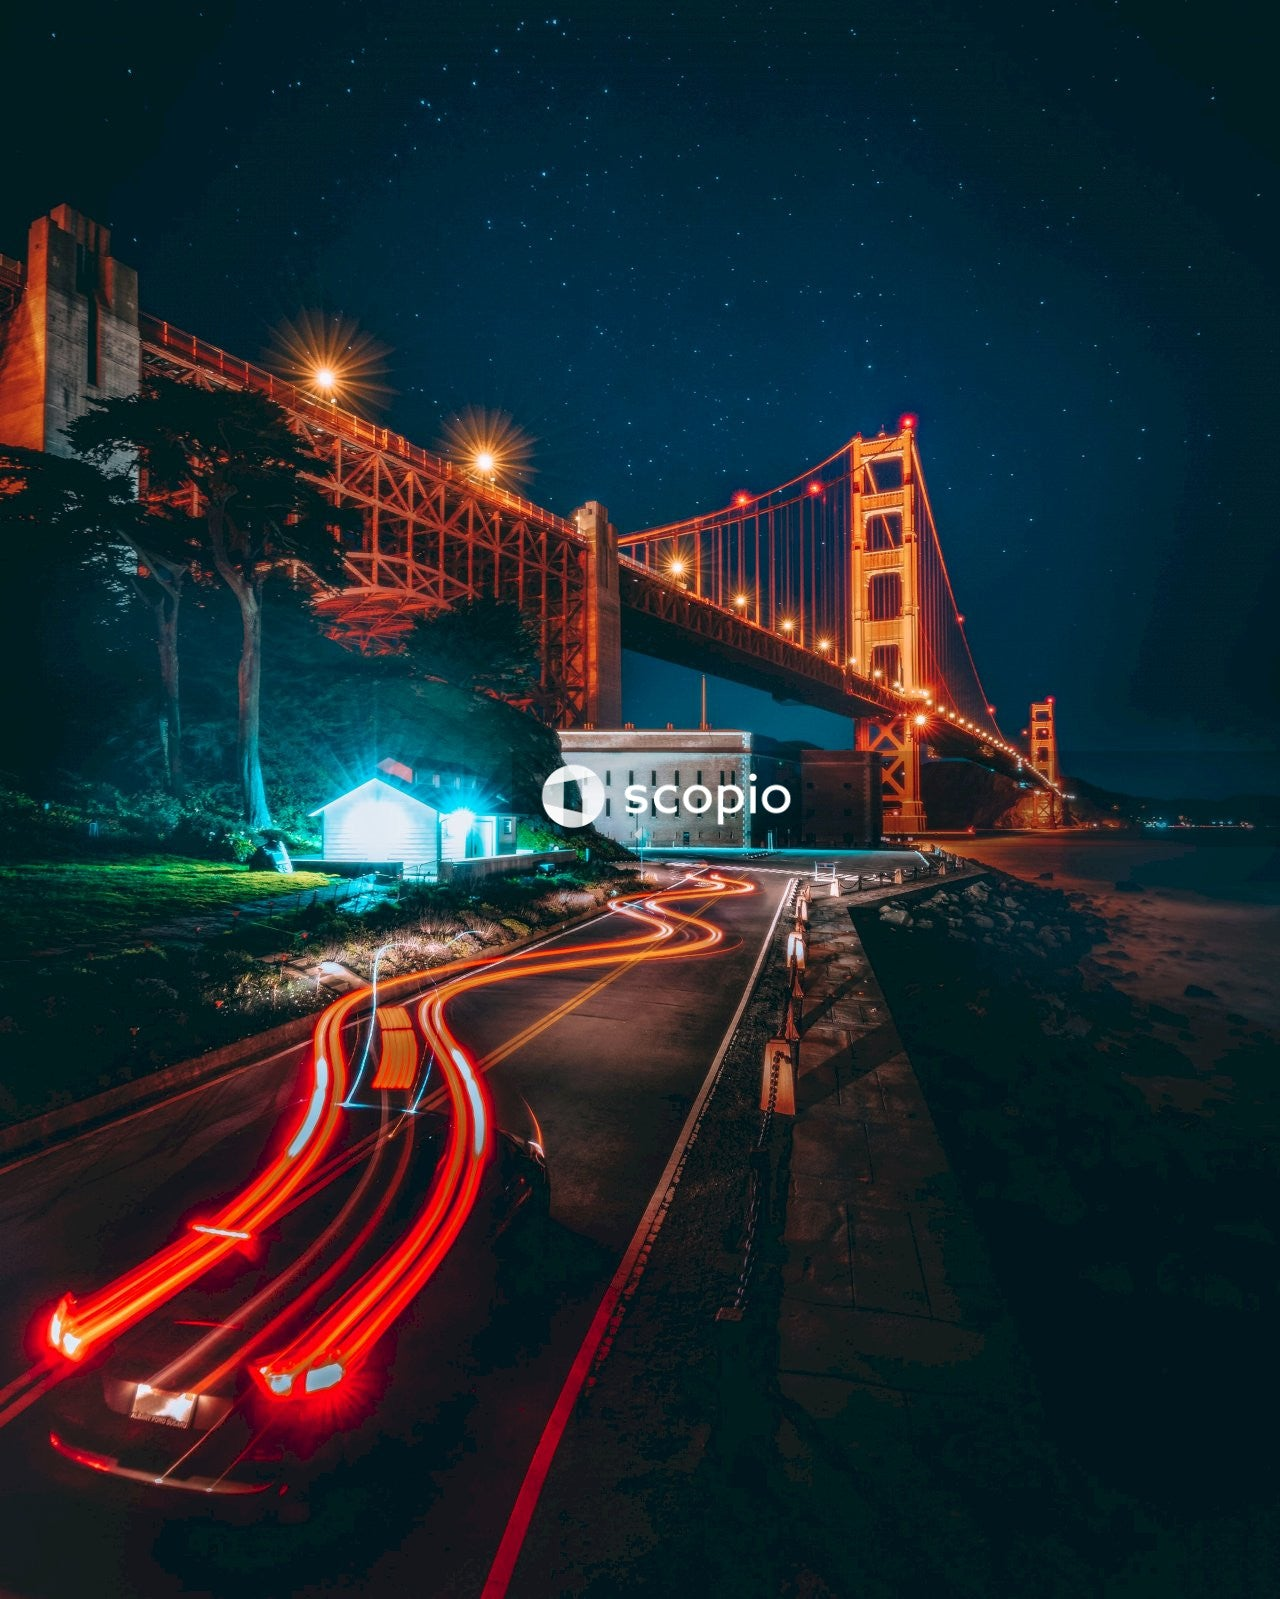 Time lapse photography of cars on bridge during night time